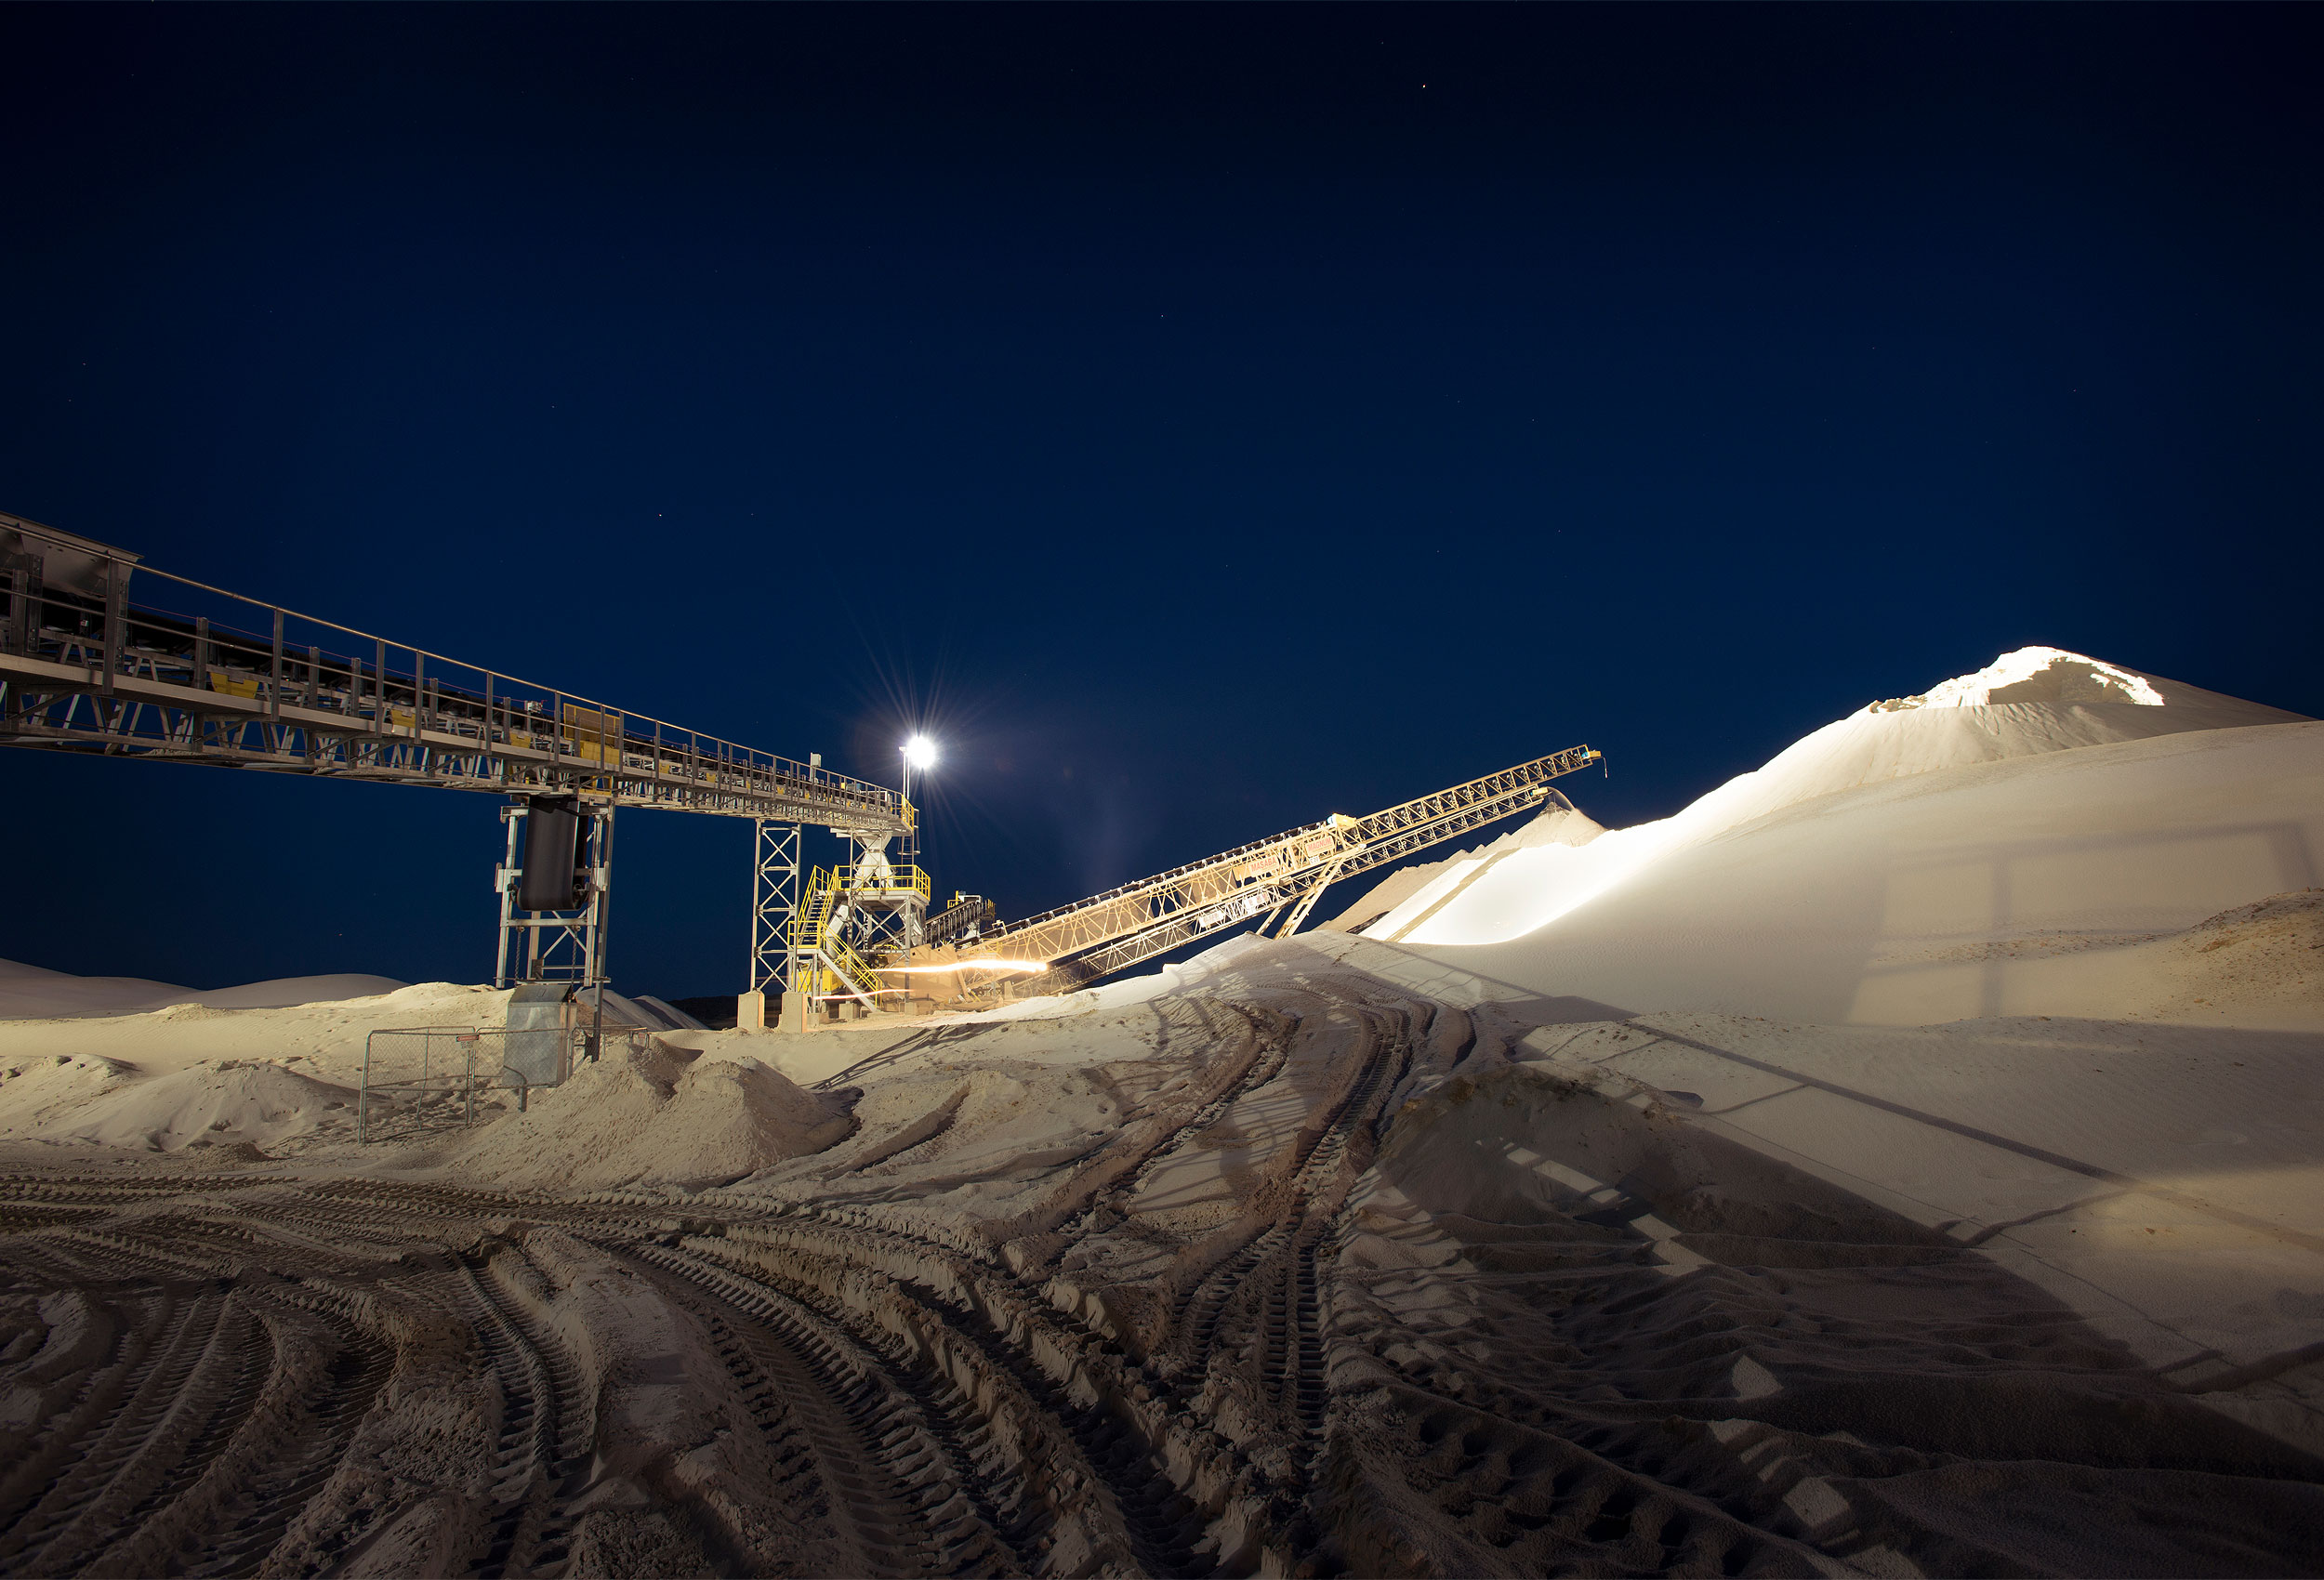 Sand mining by corporate industrial photographer Kristopher Grunert